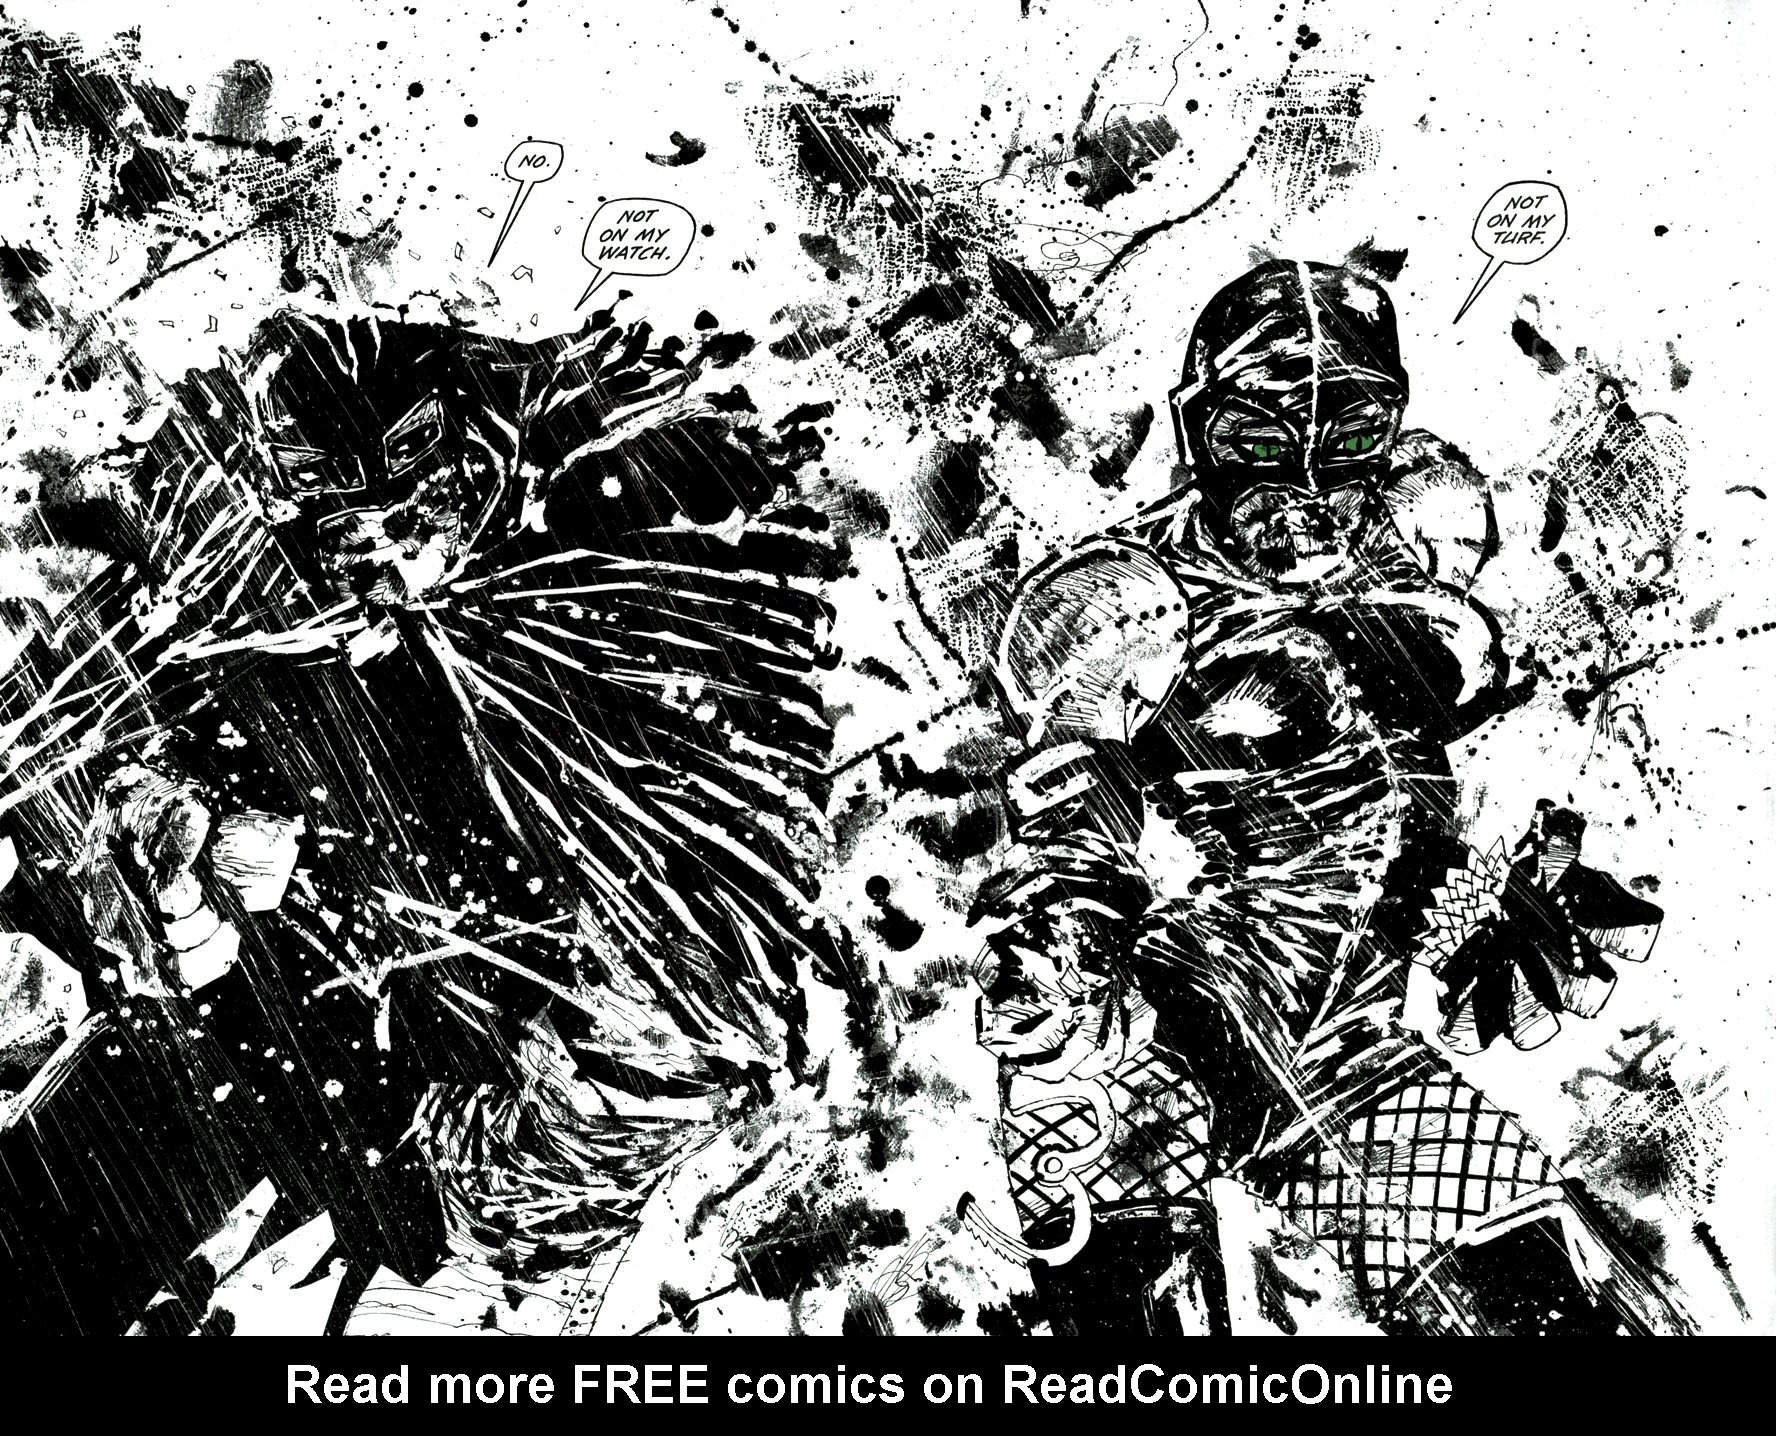 Read online Frank Miller's Holy Terror comic -  Issue # TPB - 61